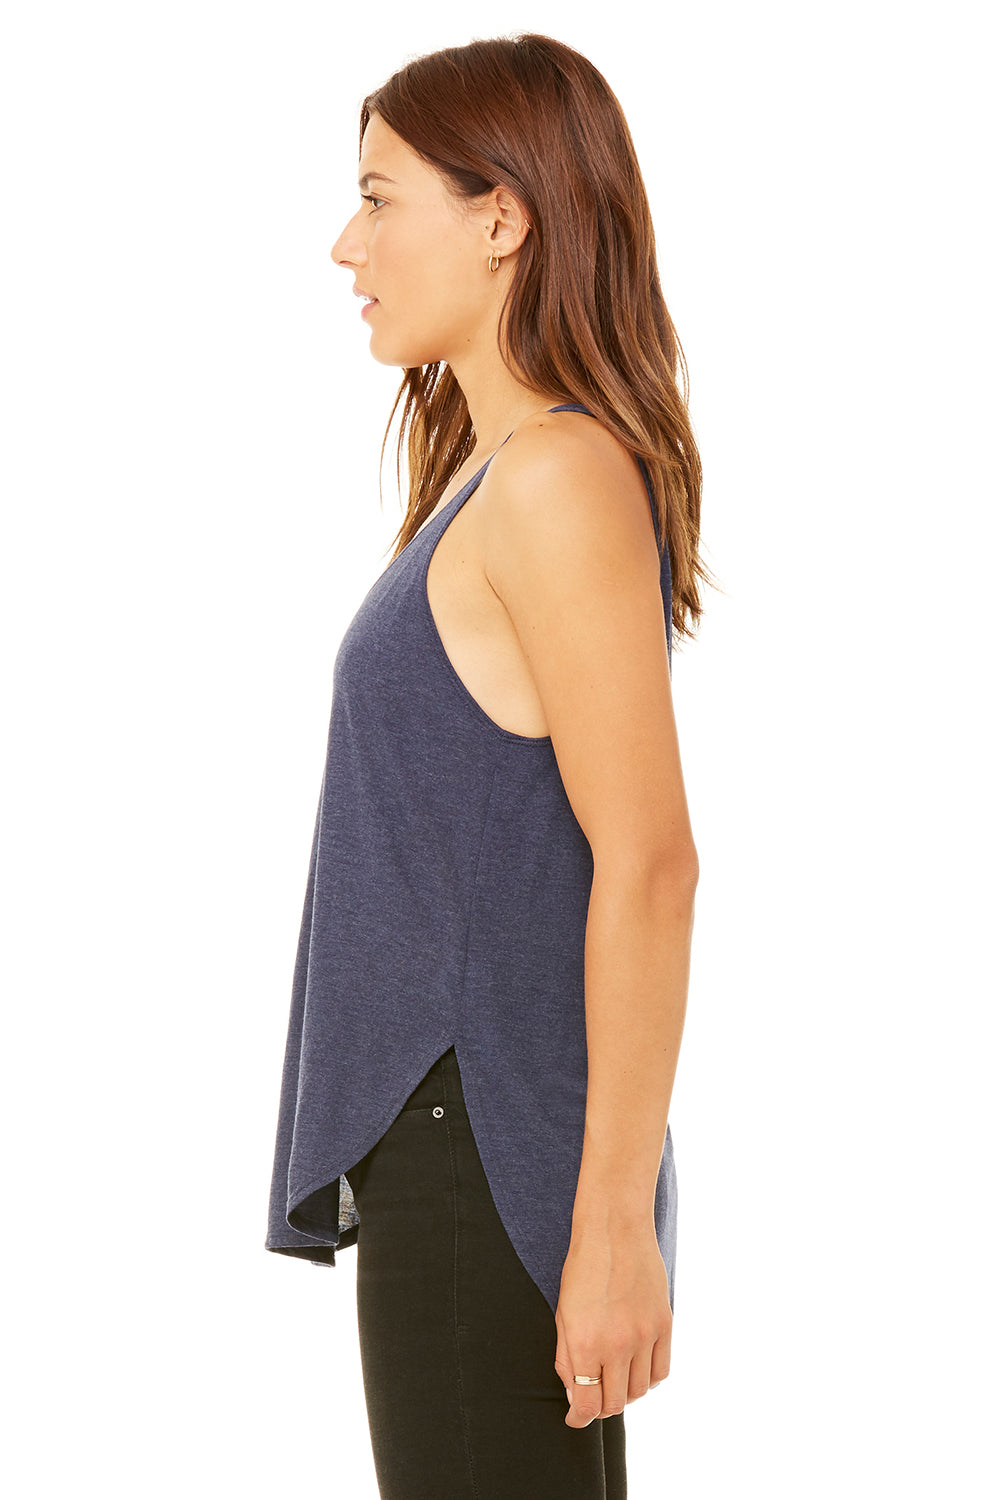 Bella + Canvas B8802 Womens Flowy Tank Top Heather Navy Blue Side